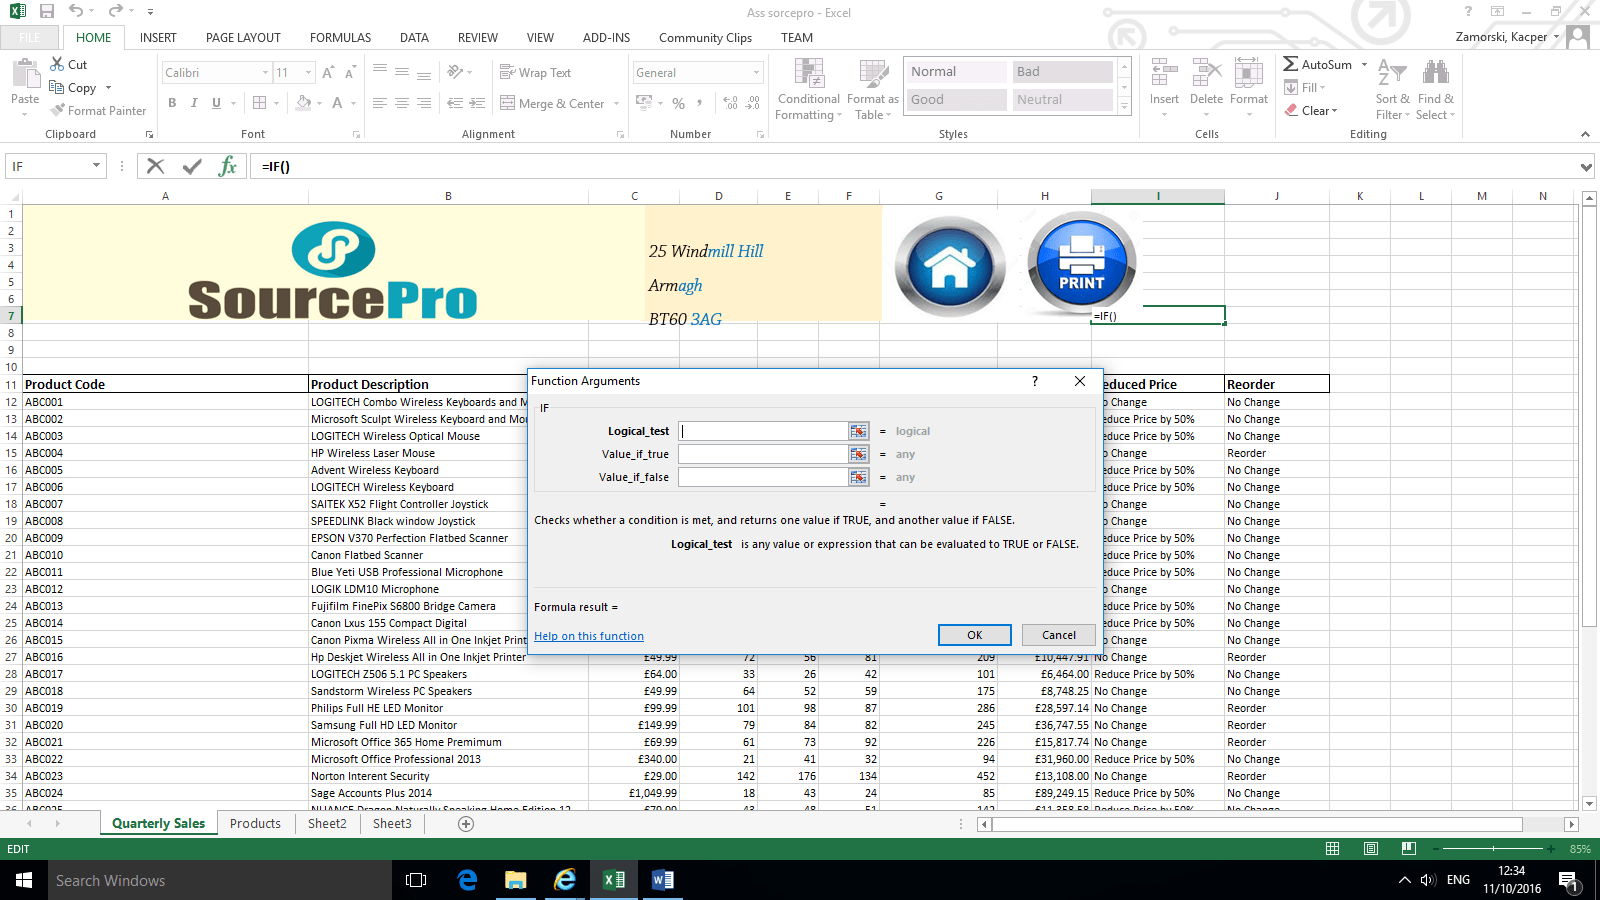 If Statment Excel User Guide